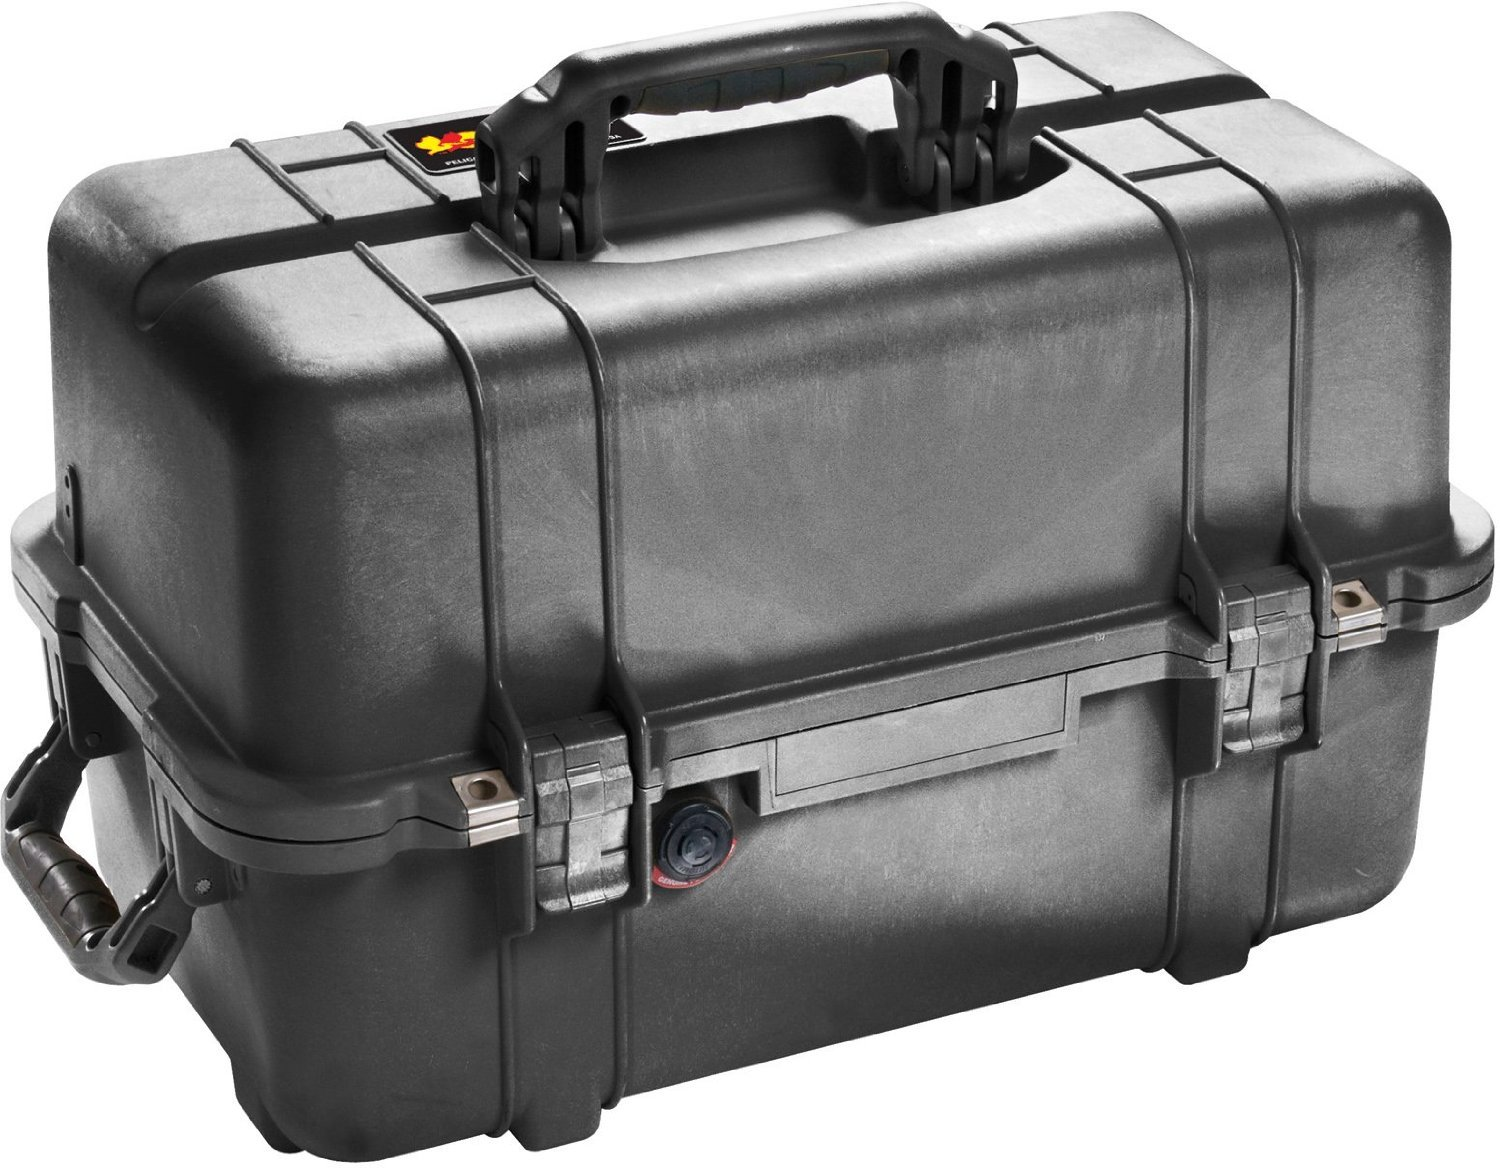 Pelican Products 1460-007-110 Pelican 1460-007-110 Medium Mobile Tool Chest Case (Black) [並行輸入品] B0160M0WT0